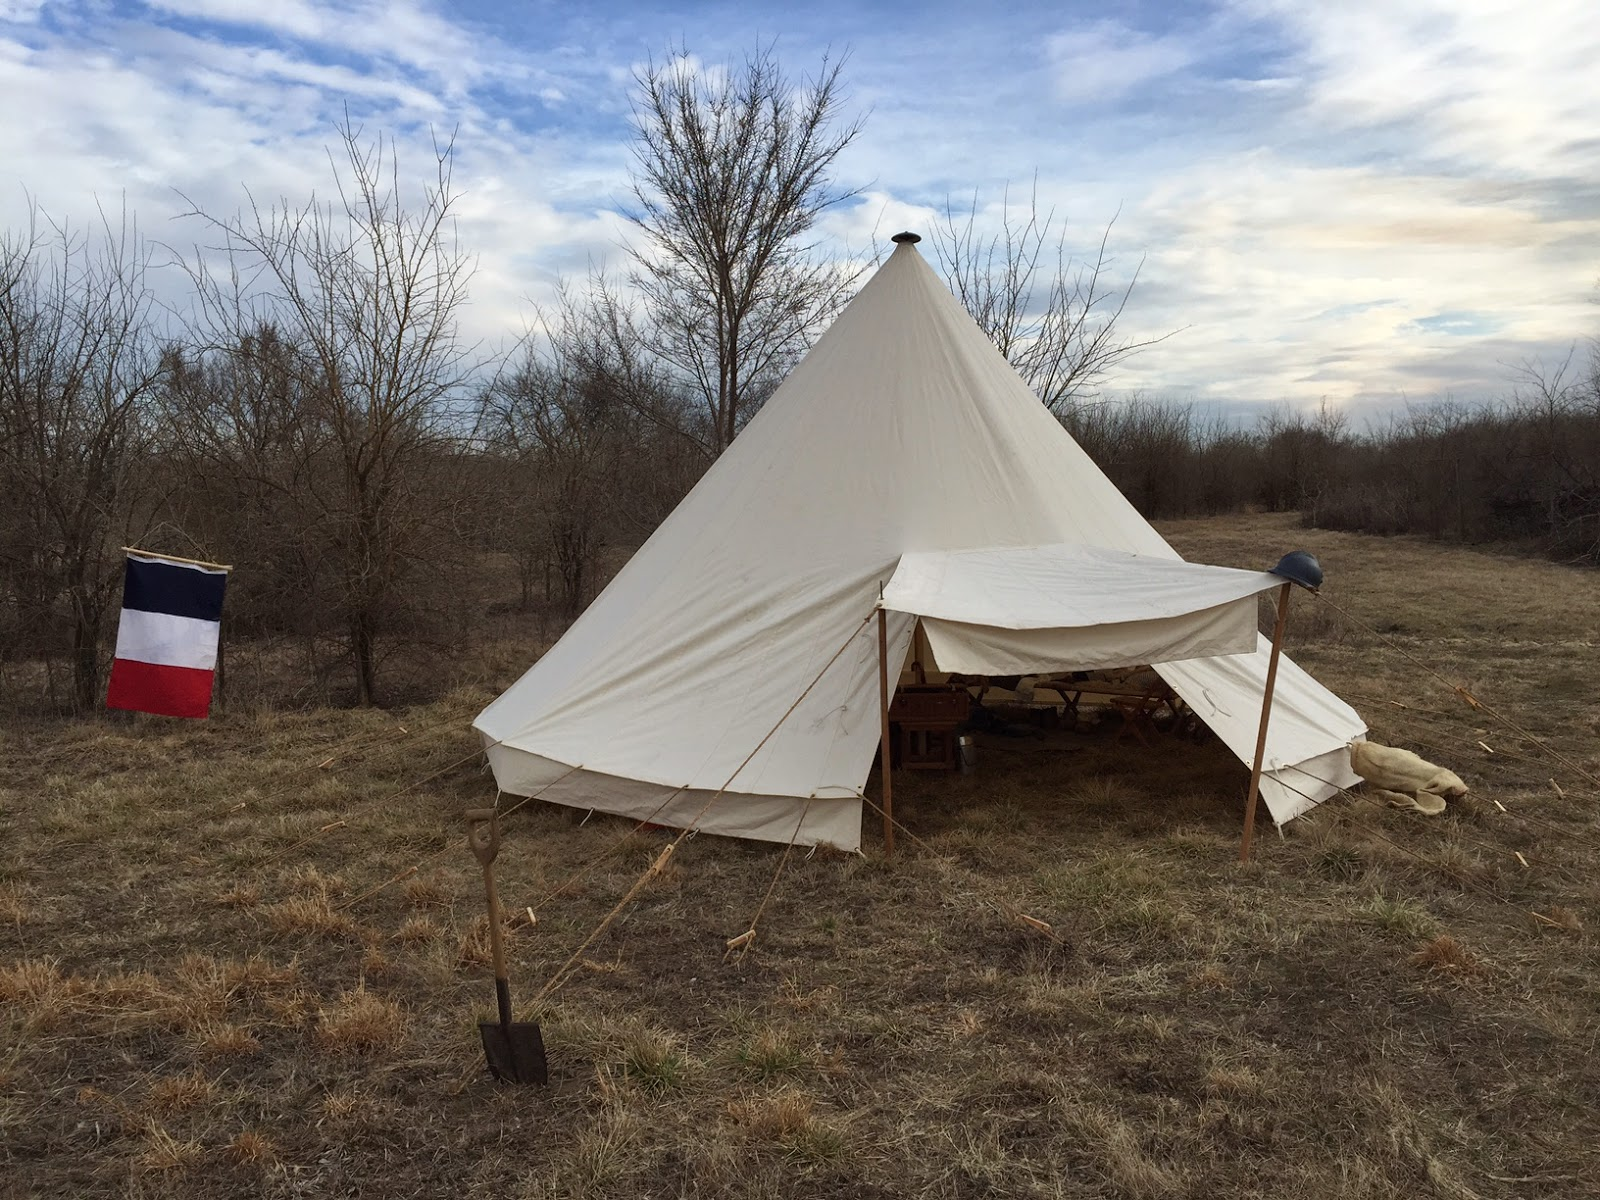 With over two years of reasearch and study Armbruster Tentmaker is proud to now offer the First World War French Army Conical Tent. & Armbruster Manufacturing Co. | World War One French Conical Tent ...